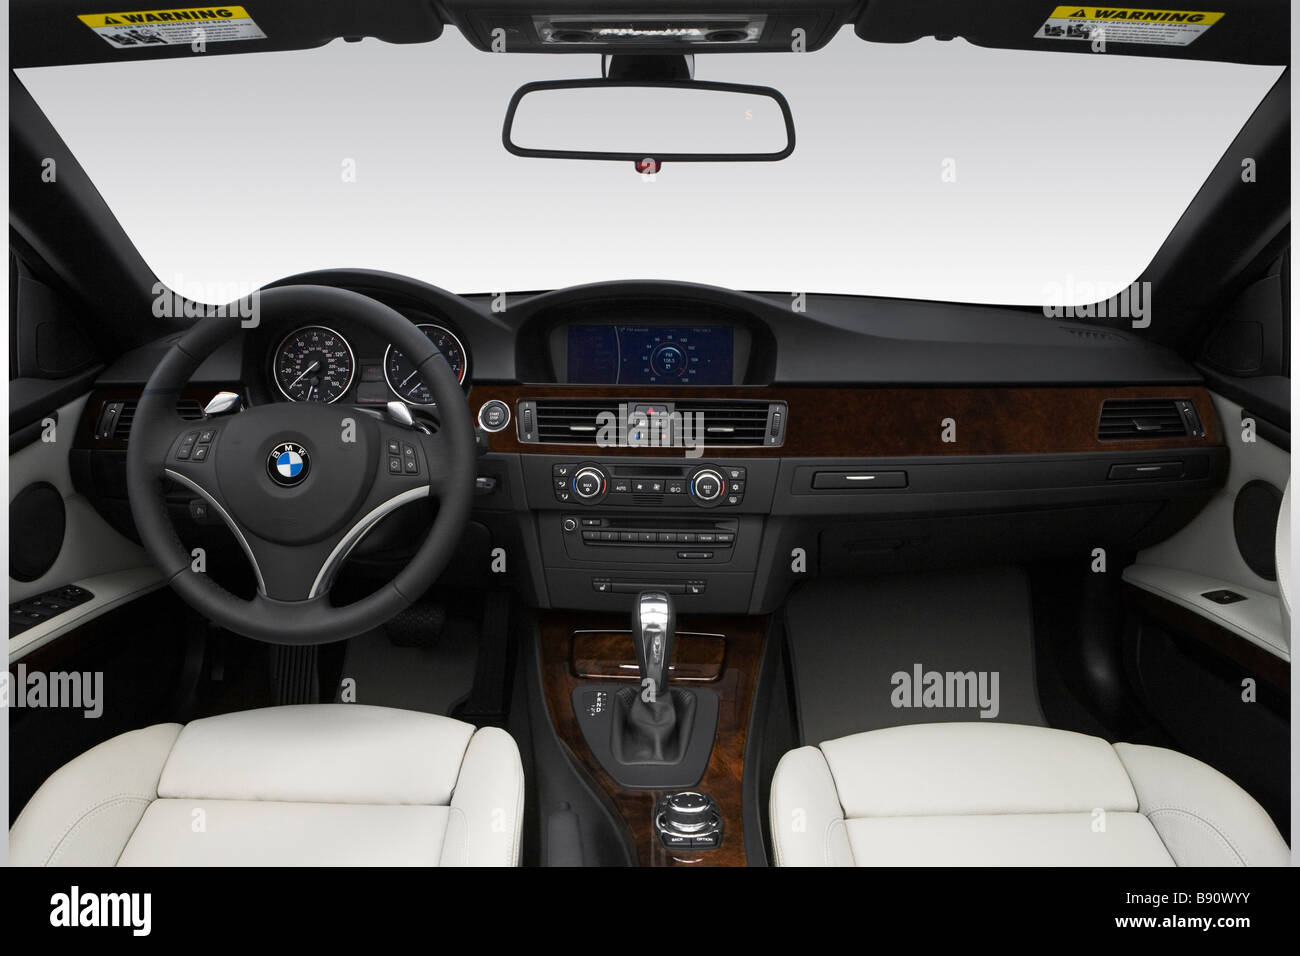 2009 Bmw 3 Series 335i In Blue Front Angle View Stock Photo